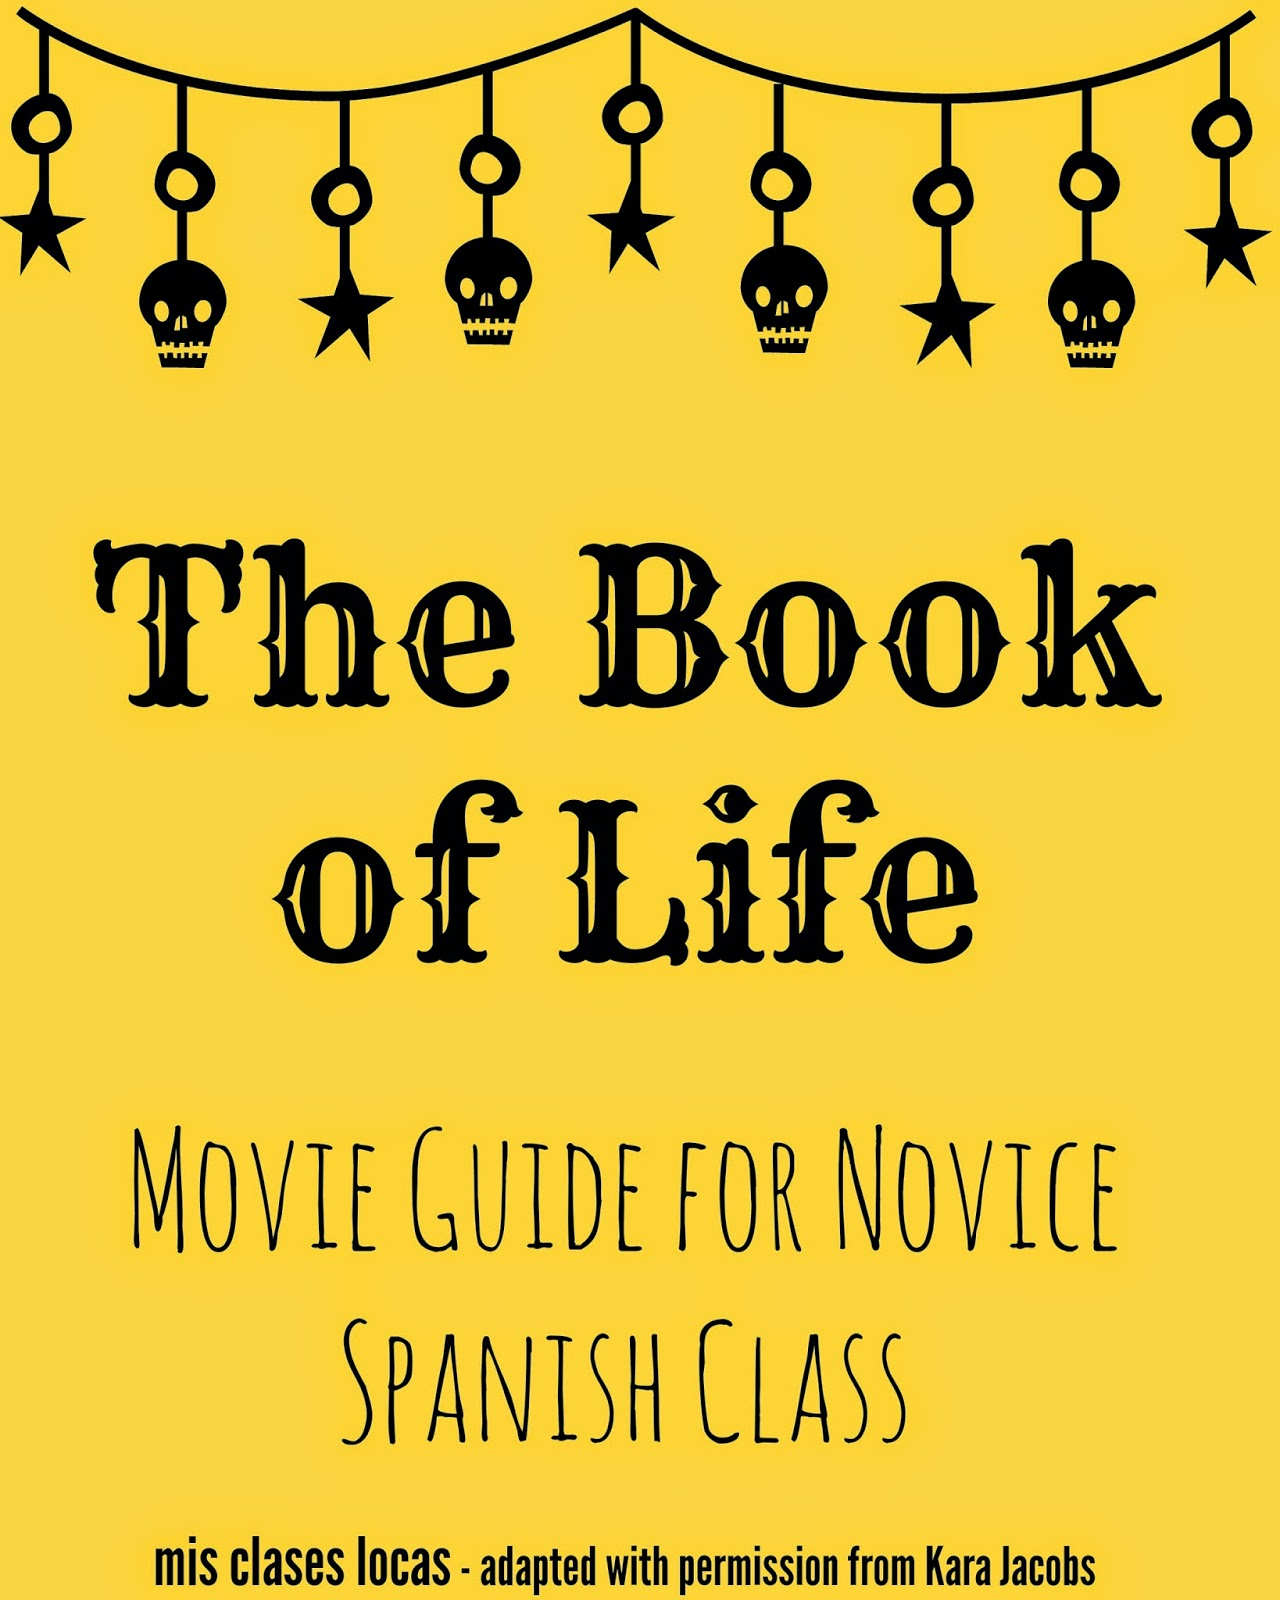 El Libro de Vida - The Book of Life - Novice Guide